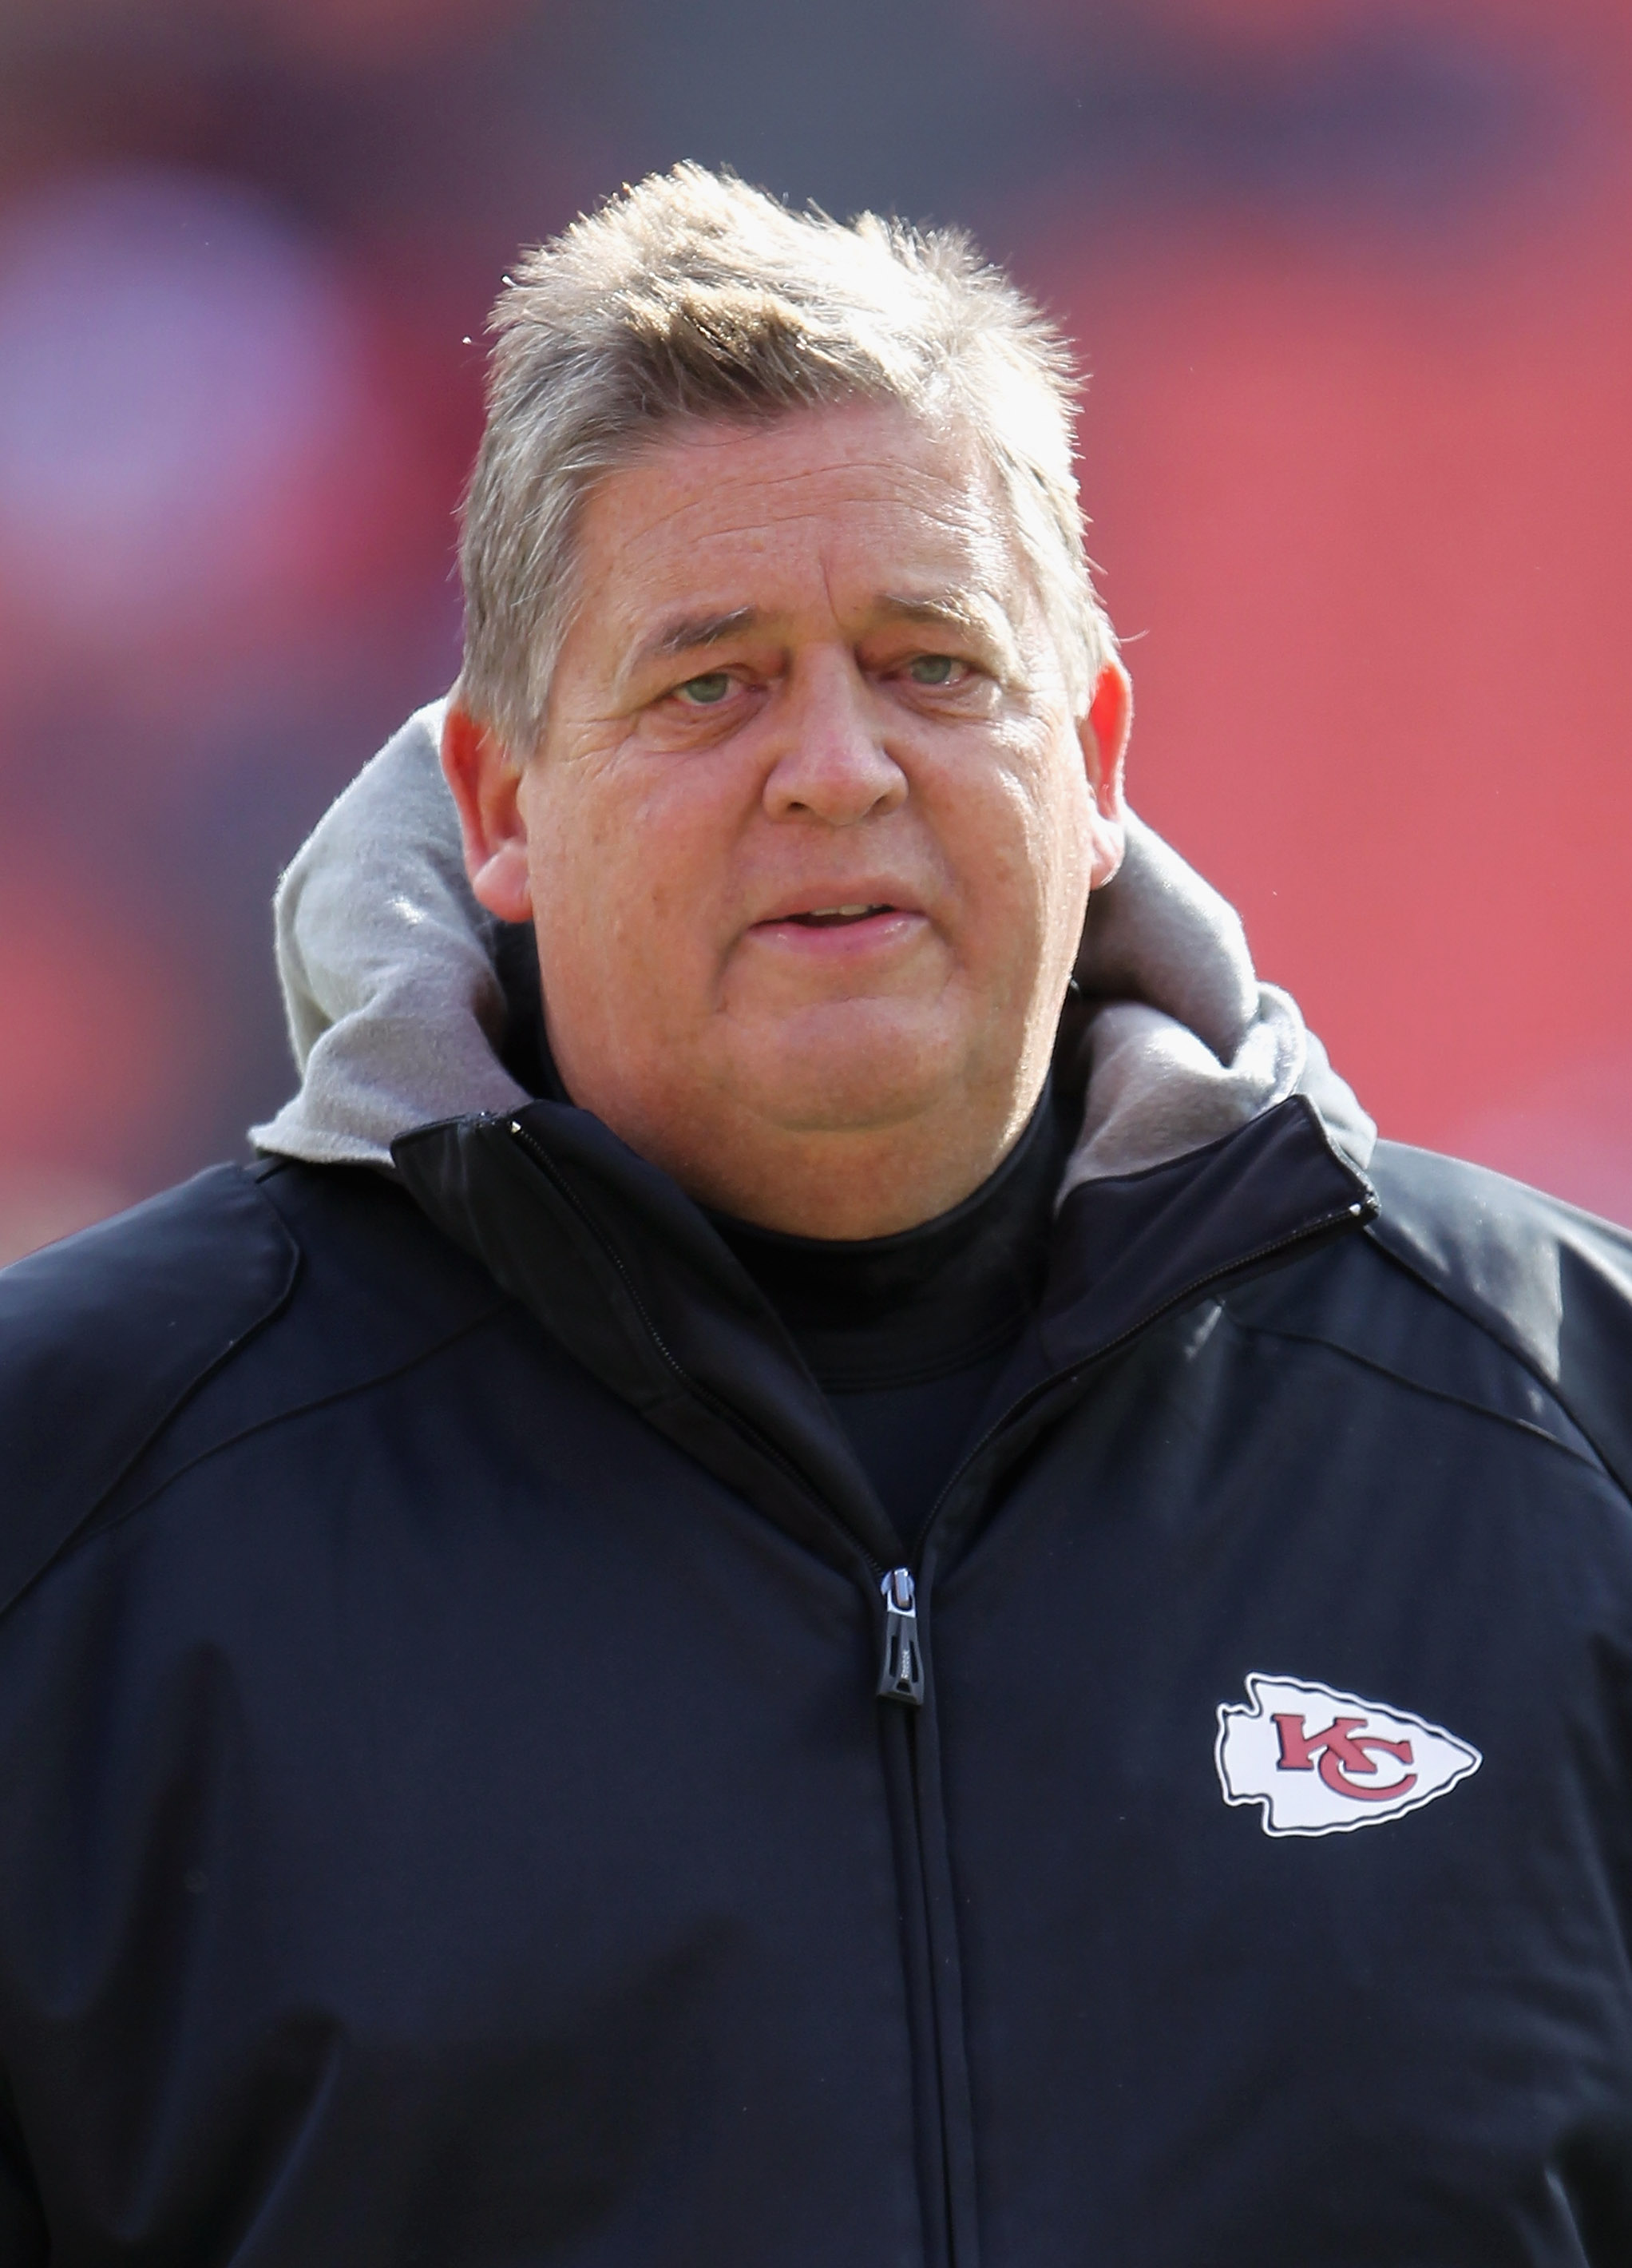 KANSAS CITY, MO - DECEMBER 05:  Offensive coordinator Charlie Weis of the Kansas City Chiefs walks on the field prior to the game against the Denver Broncos on December 5, 2010 at Arrowhead Stadium in Kansas City, Missouri.  (Photo by Jamie Squire/Getty I